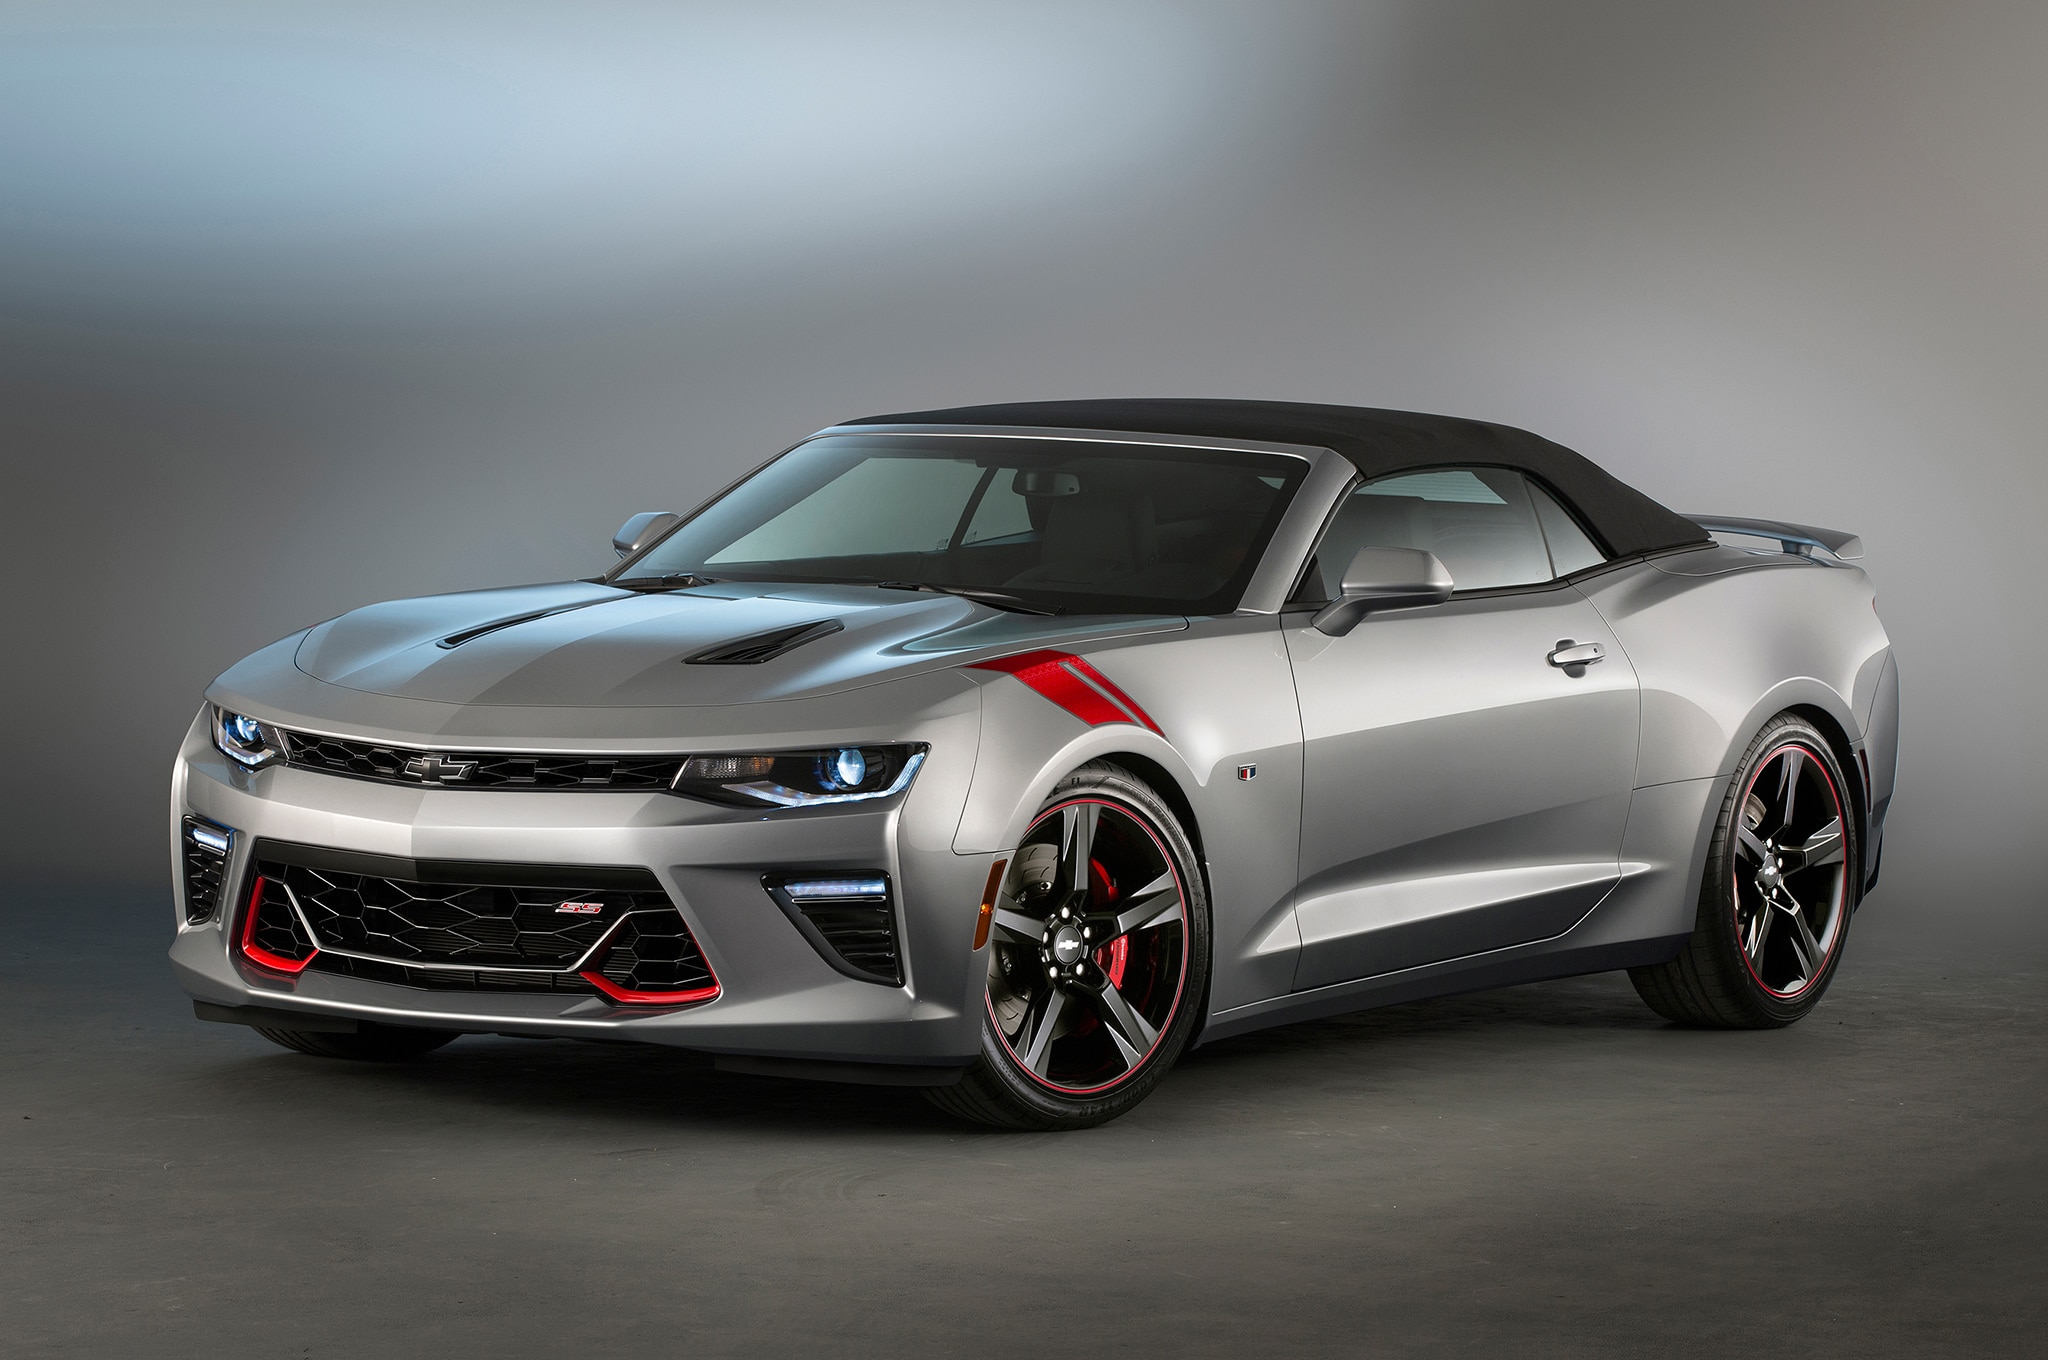 2016 chevrolet camaro ss red black accent concepts head. Black Bedroom Furniture Sets. Home Design Ideas